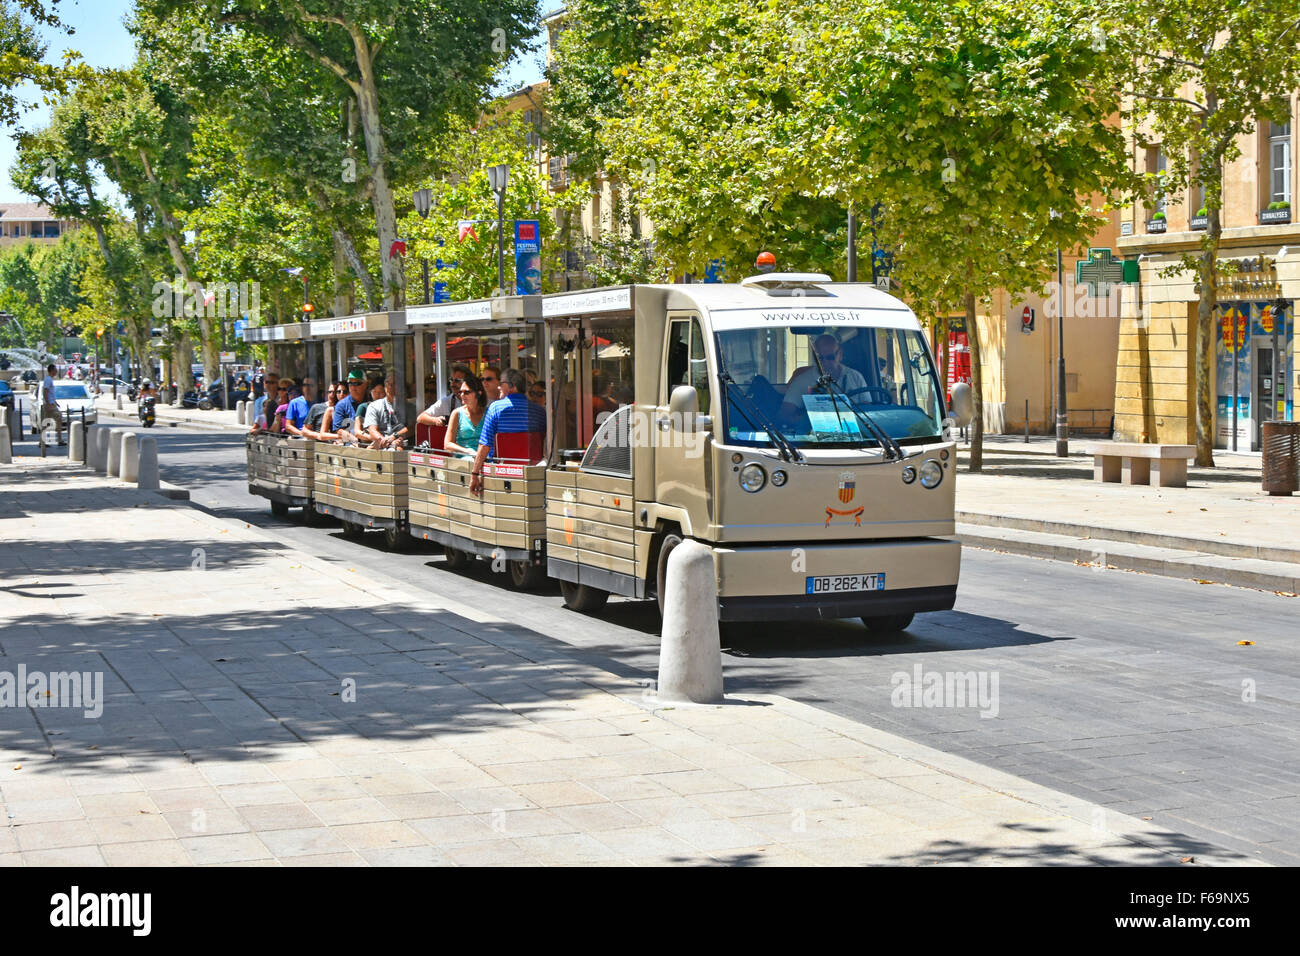 Aix-en-Provence South of France Land train sightseeing trip along the prestigious Cours Mirabeau boulevard on a - Stock Image